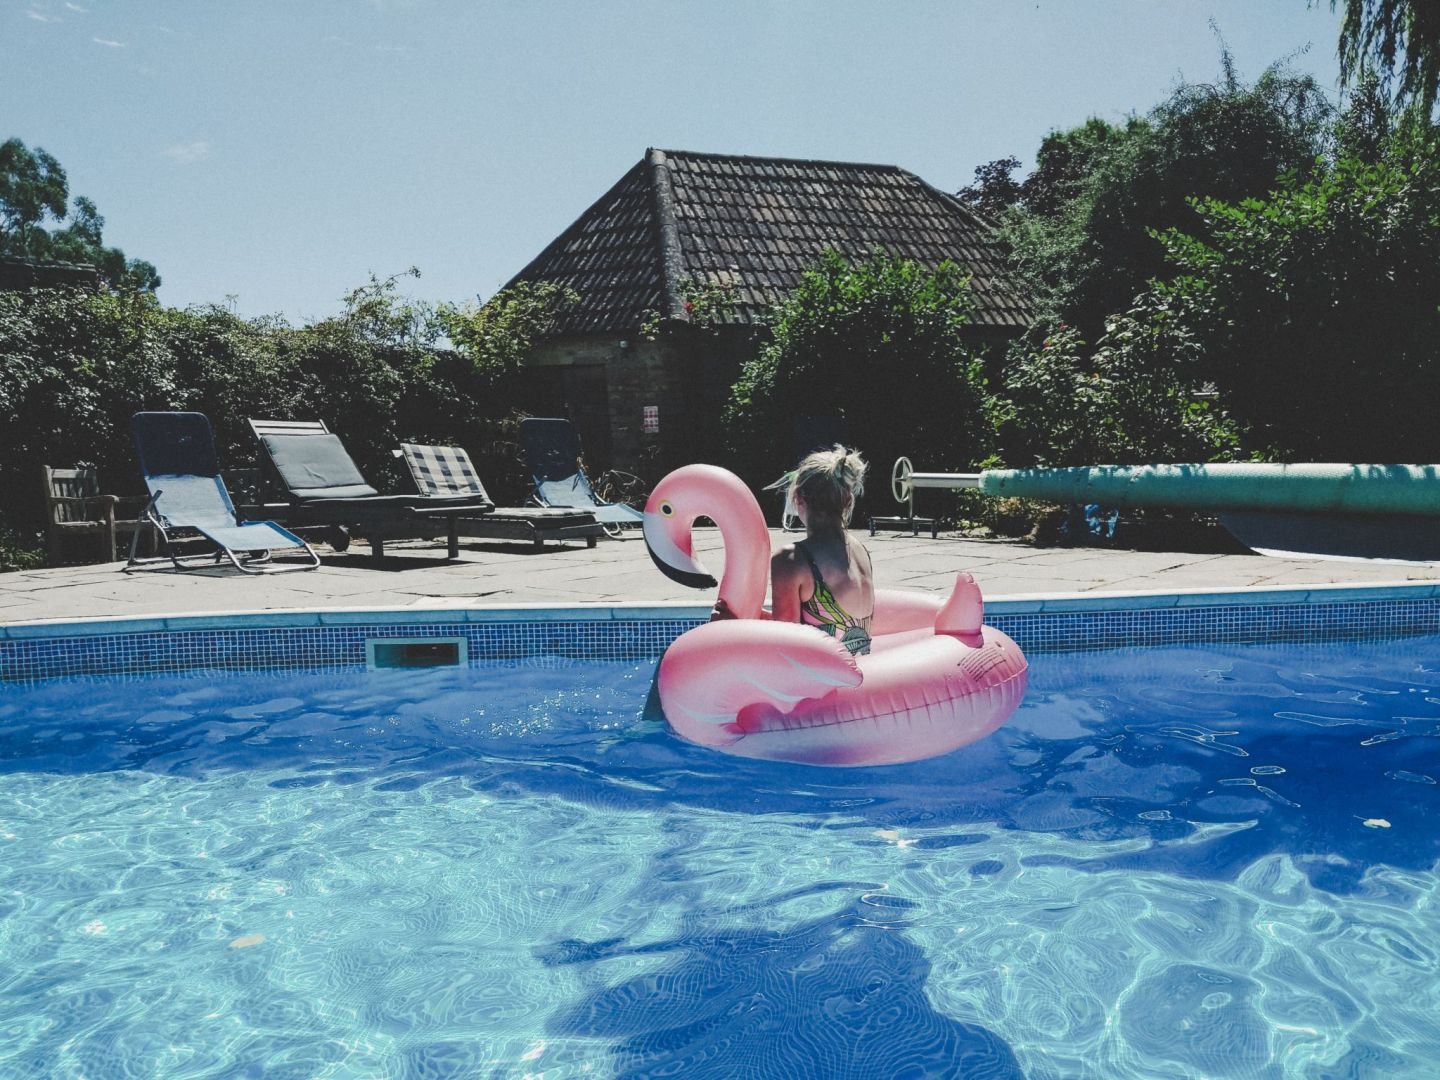 flamingo toy in swimming pool